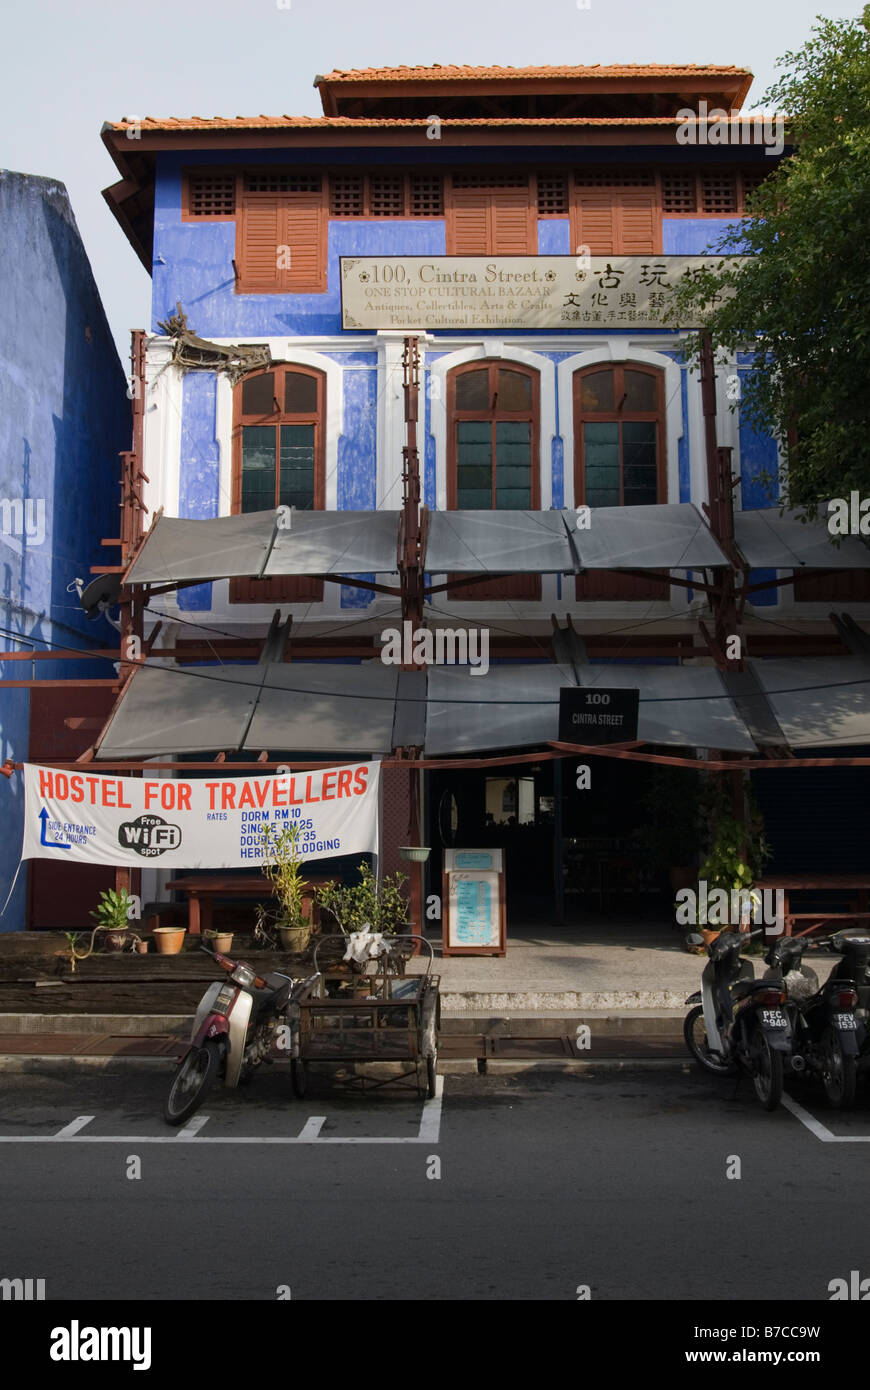 100 Cintra Street Penang, Peranakan style house used as a hostel, Georgetown, Penang, Malaysia - Stock Image